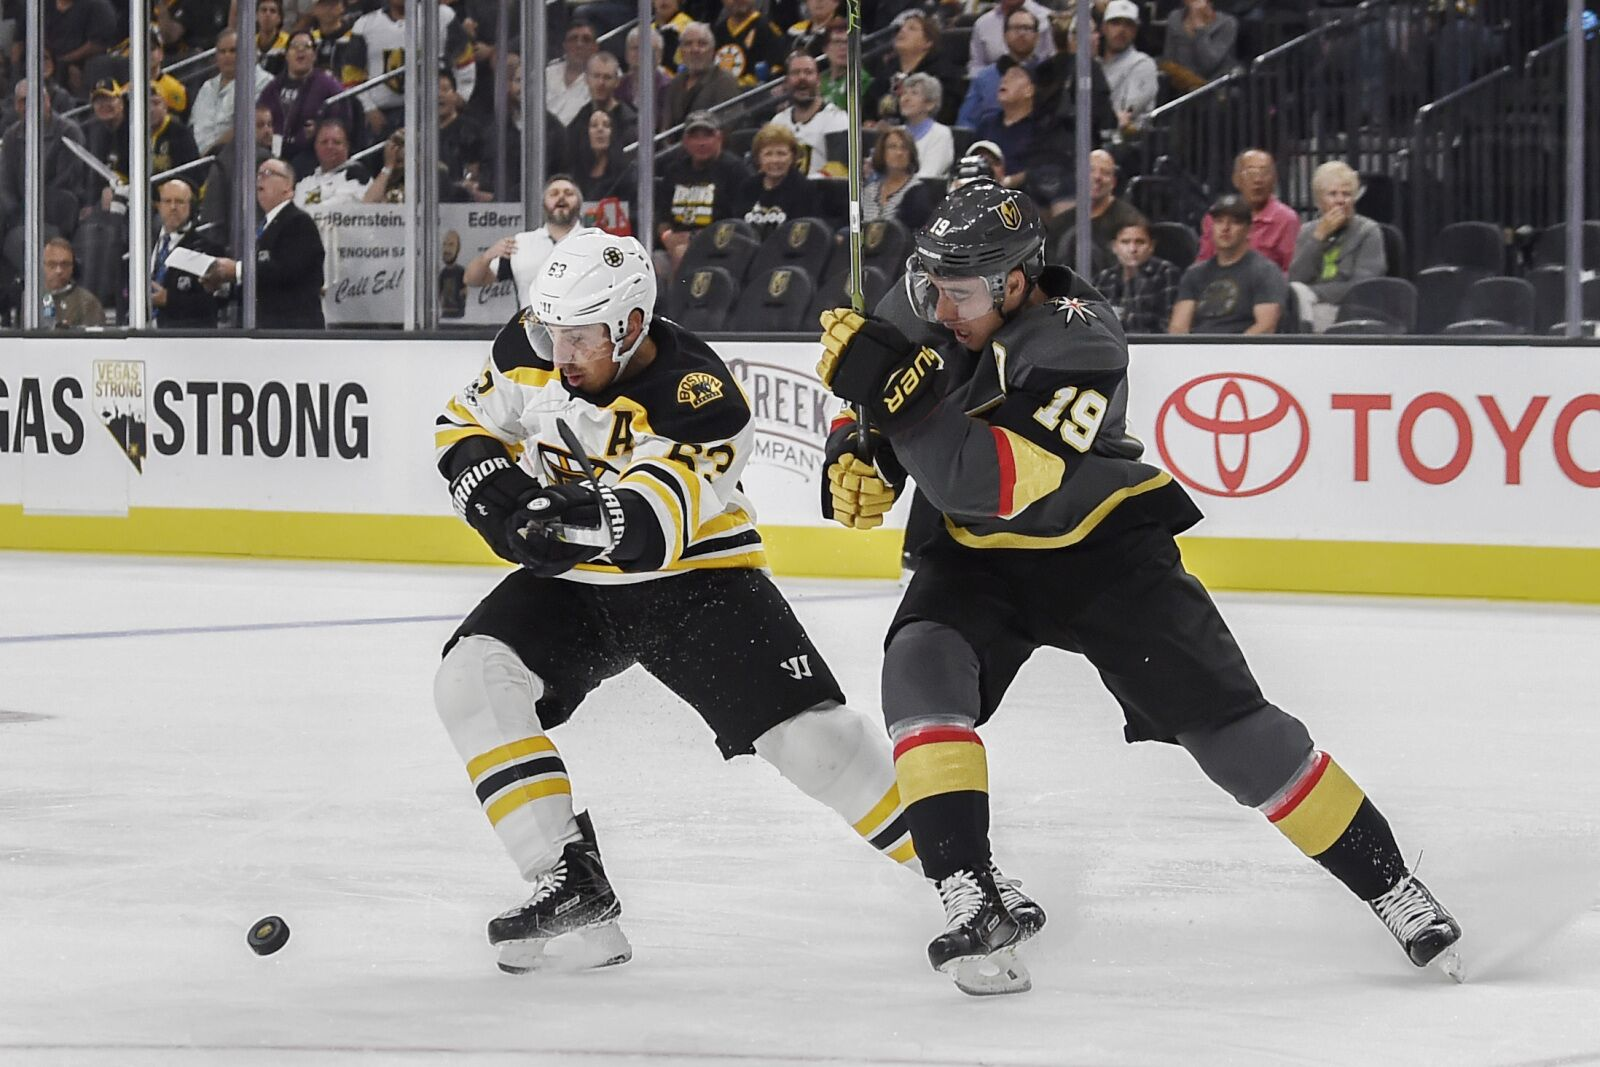 Boston Bruins: Did they give up too early on Reilly Smith?